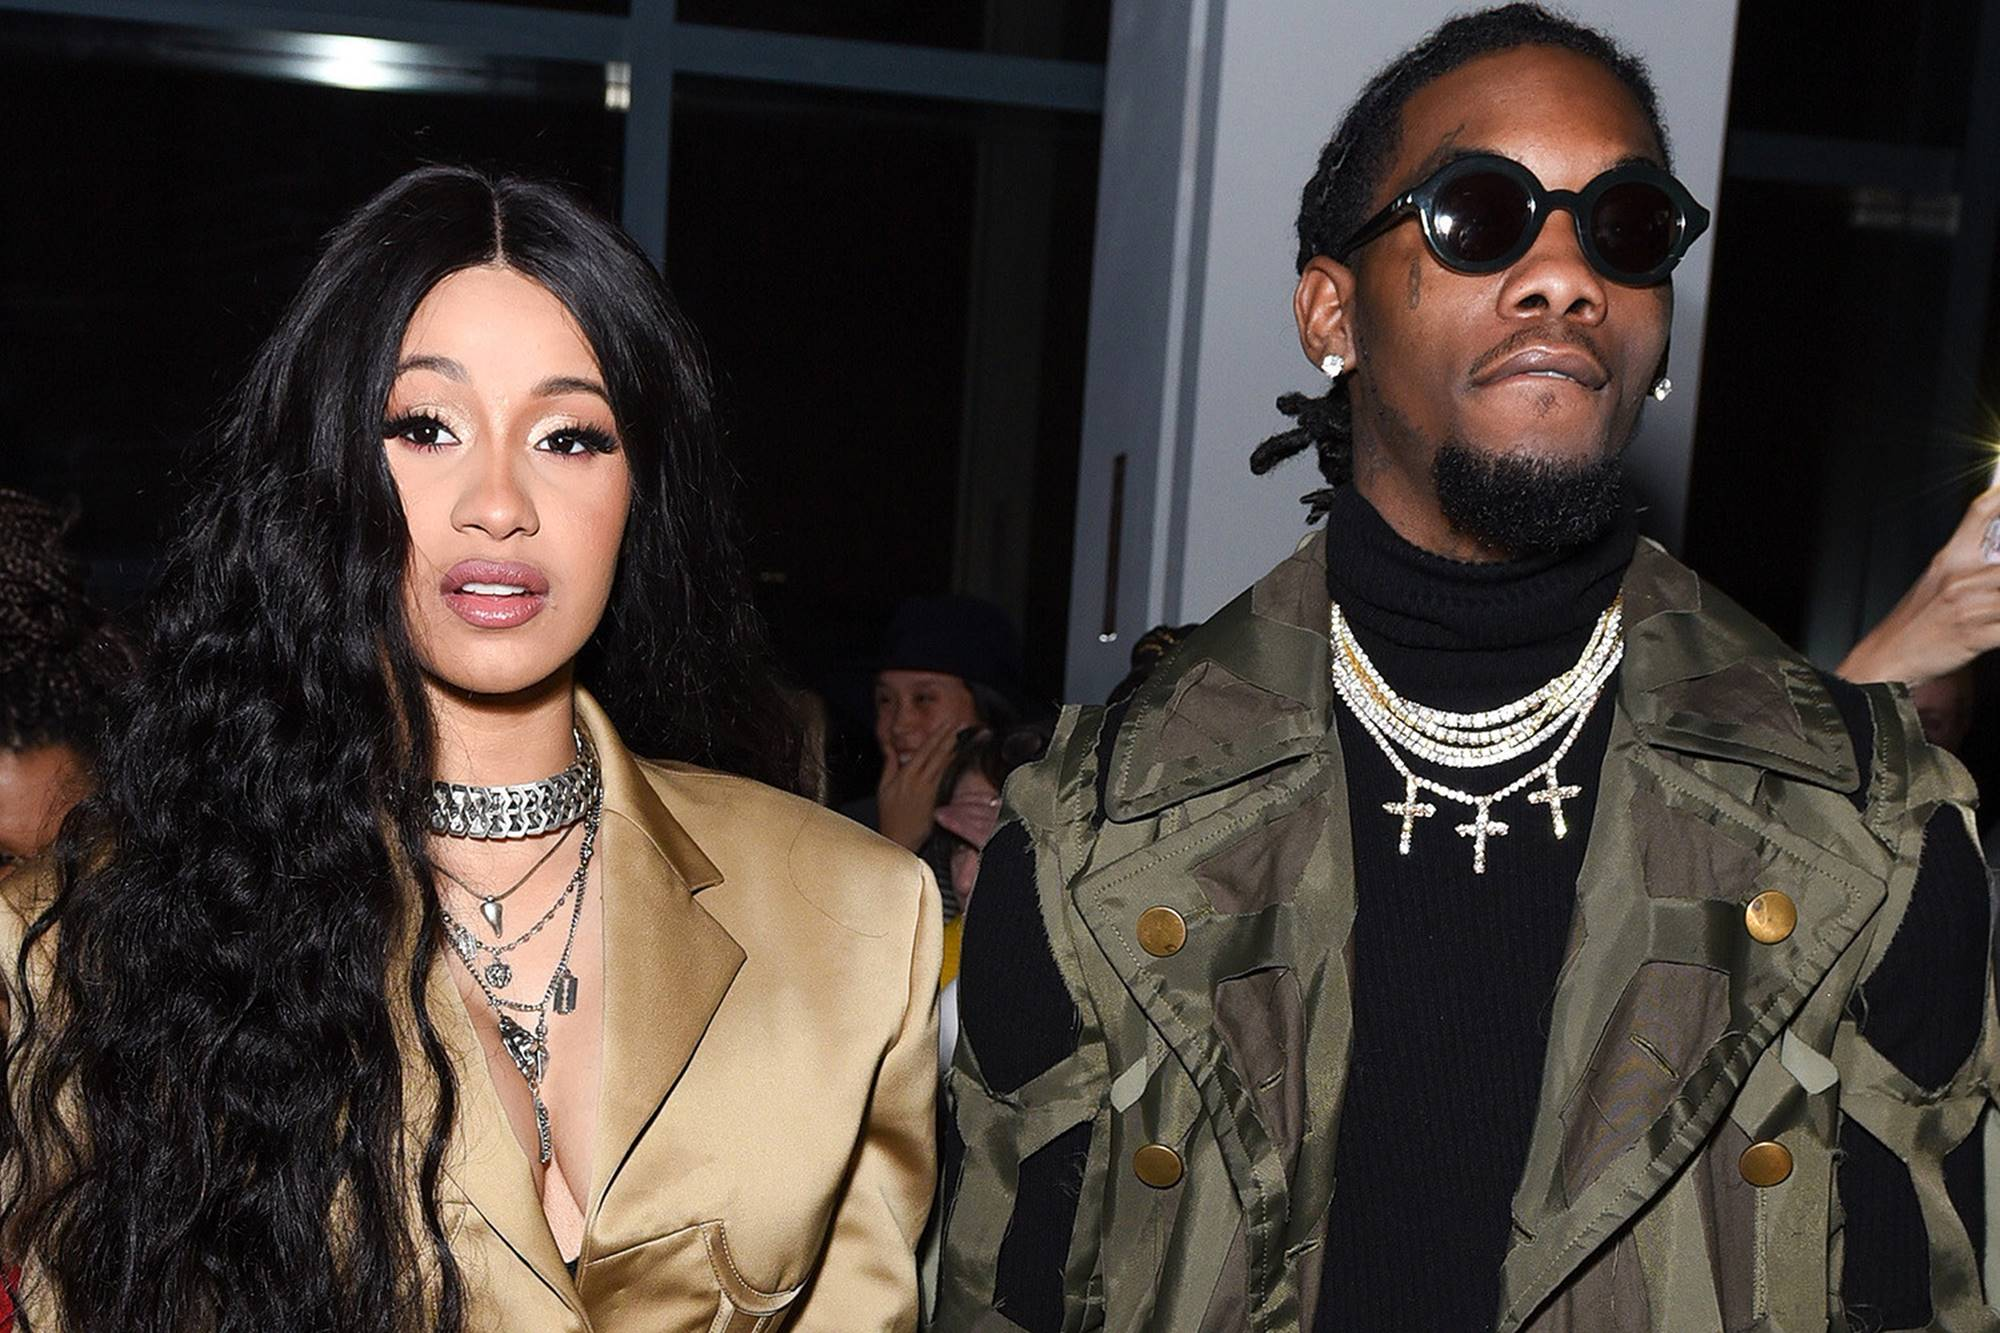 Cardi B Responds To Offset's Romantic Gesture In Video